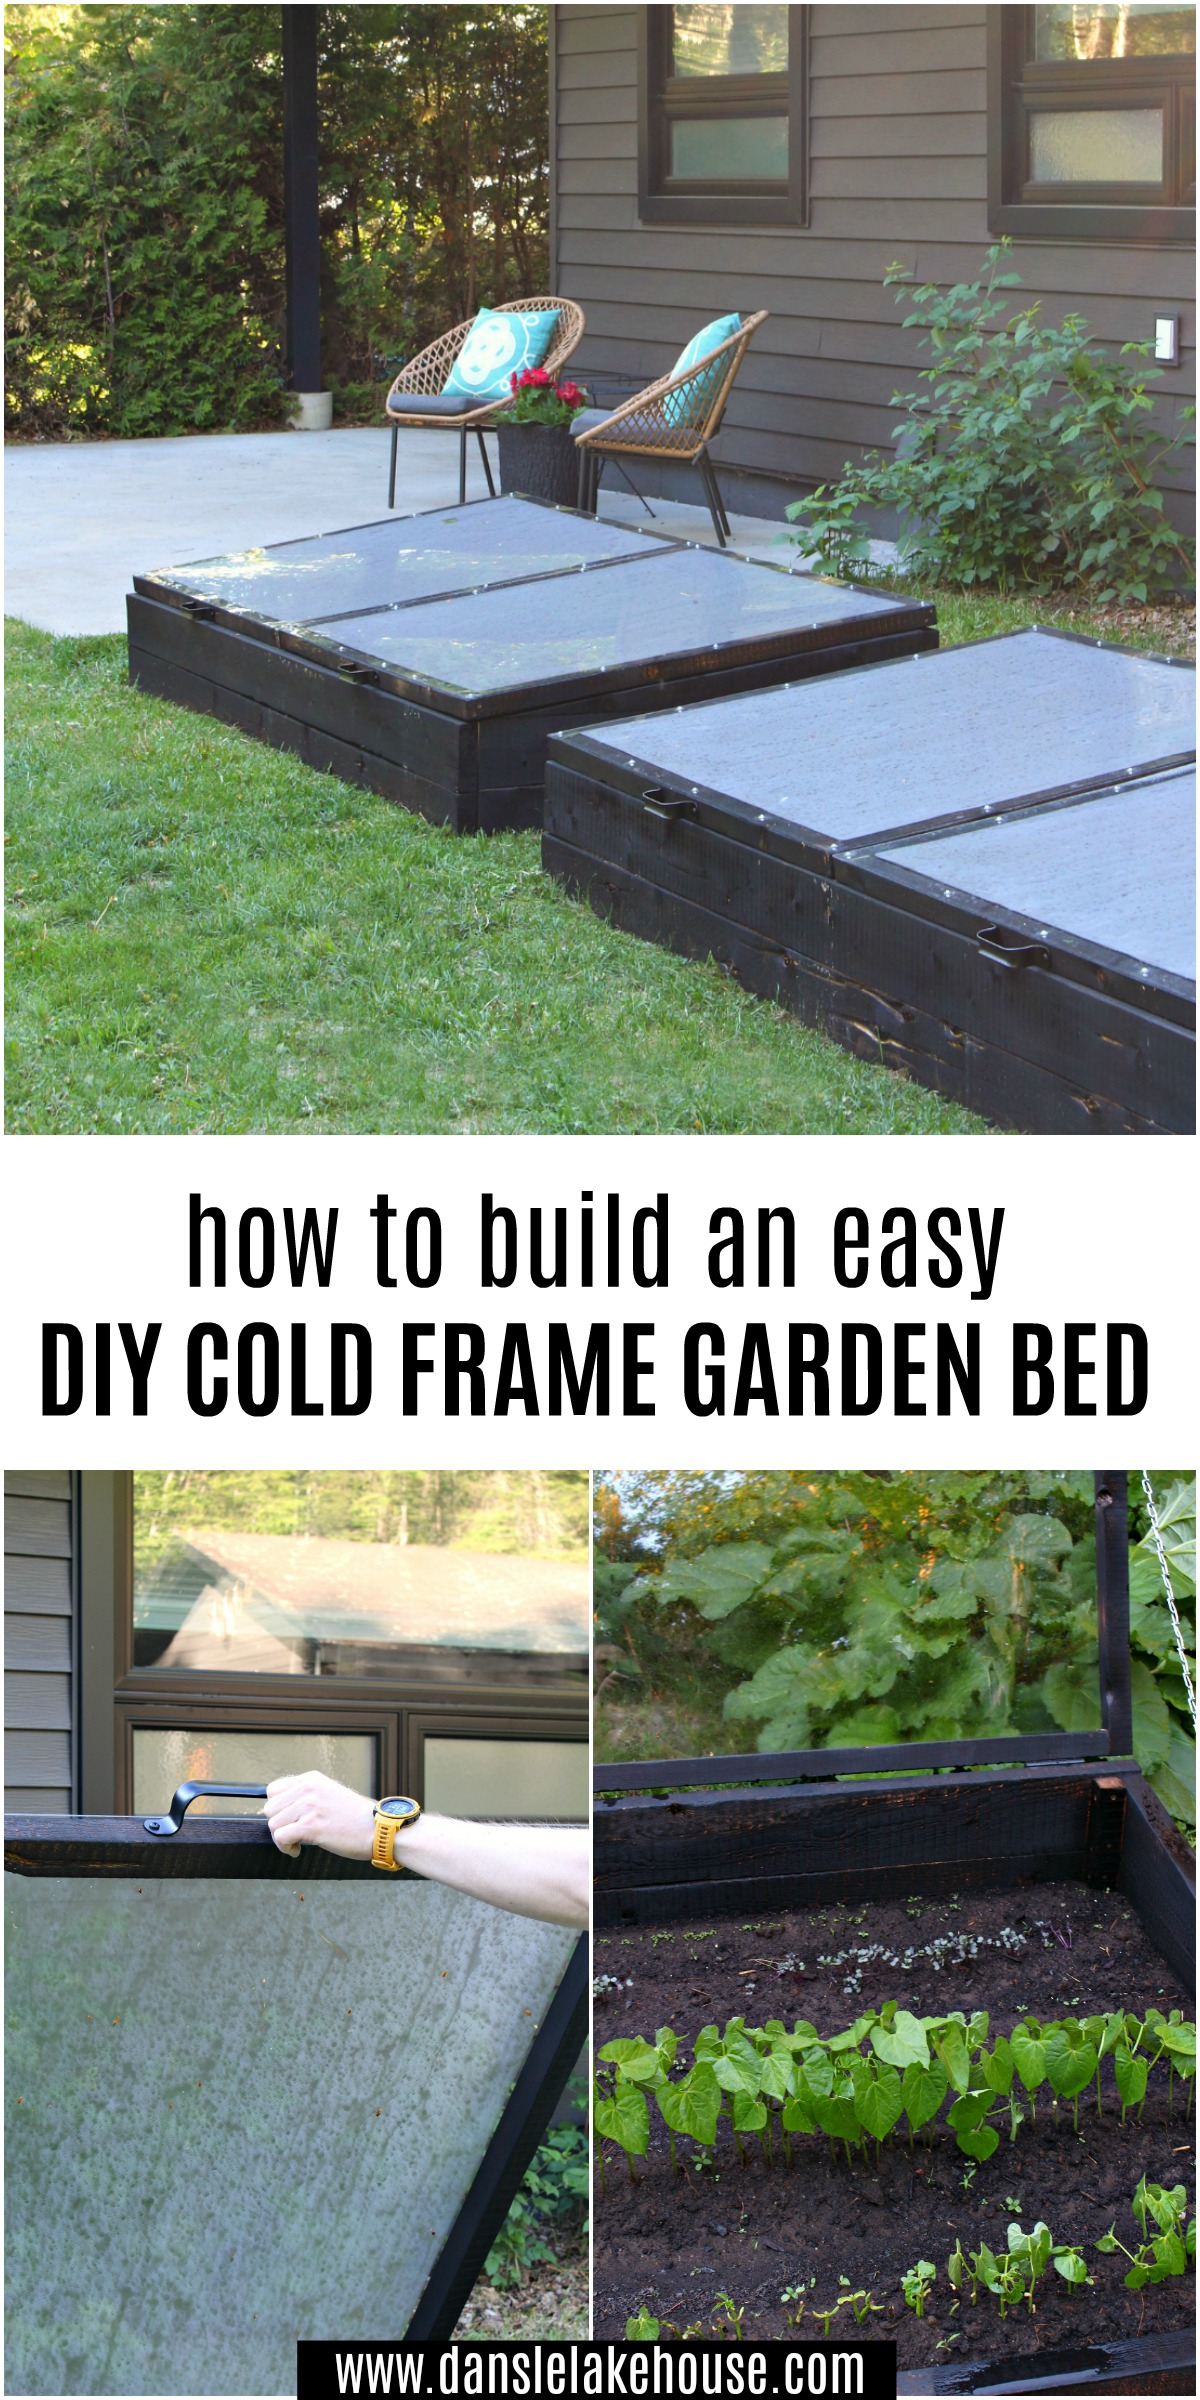 How to Build an Easy DIY Cold Frame Garden Bed